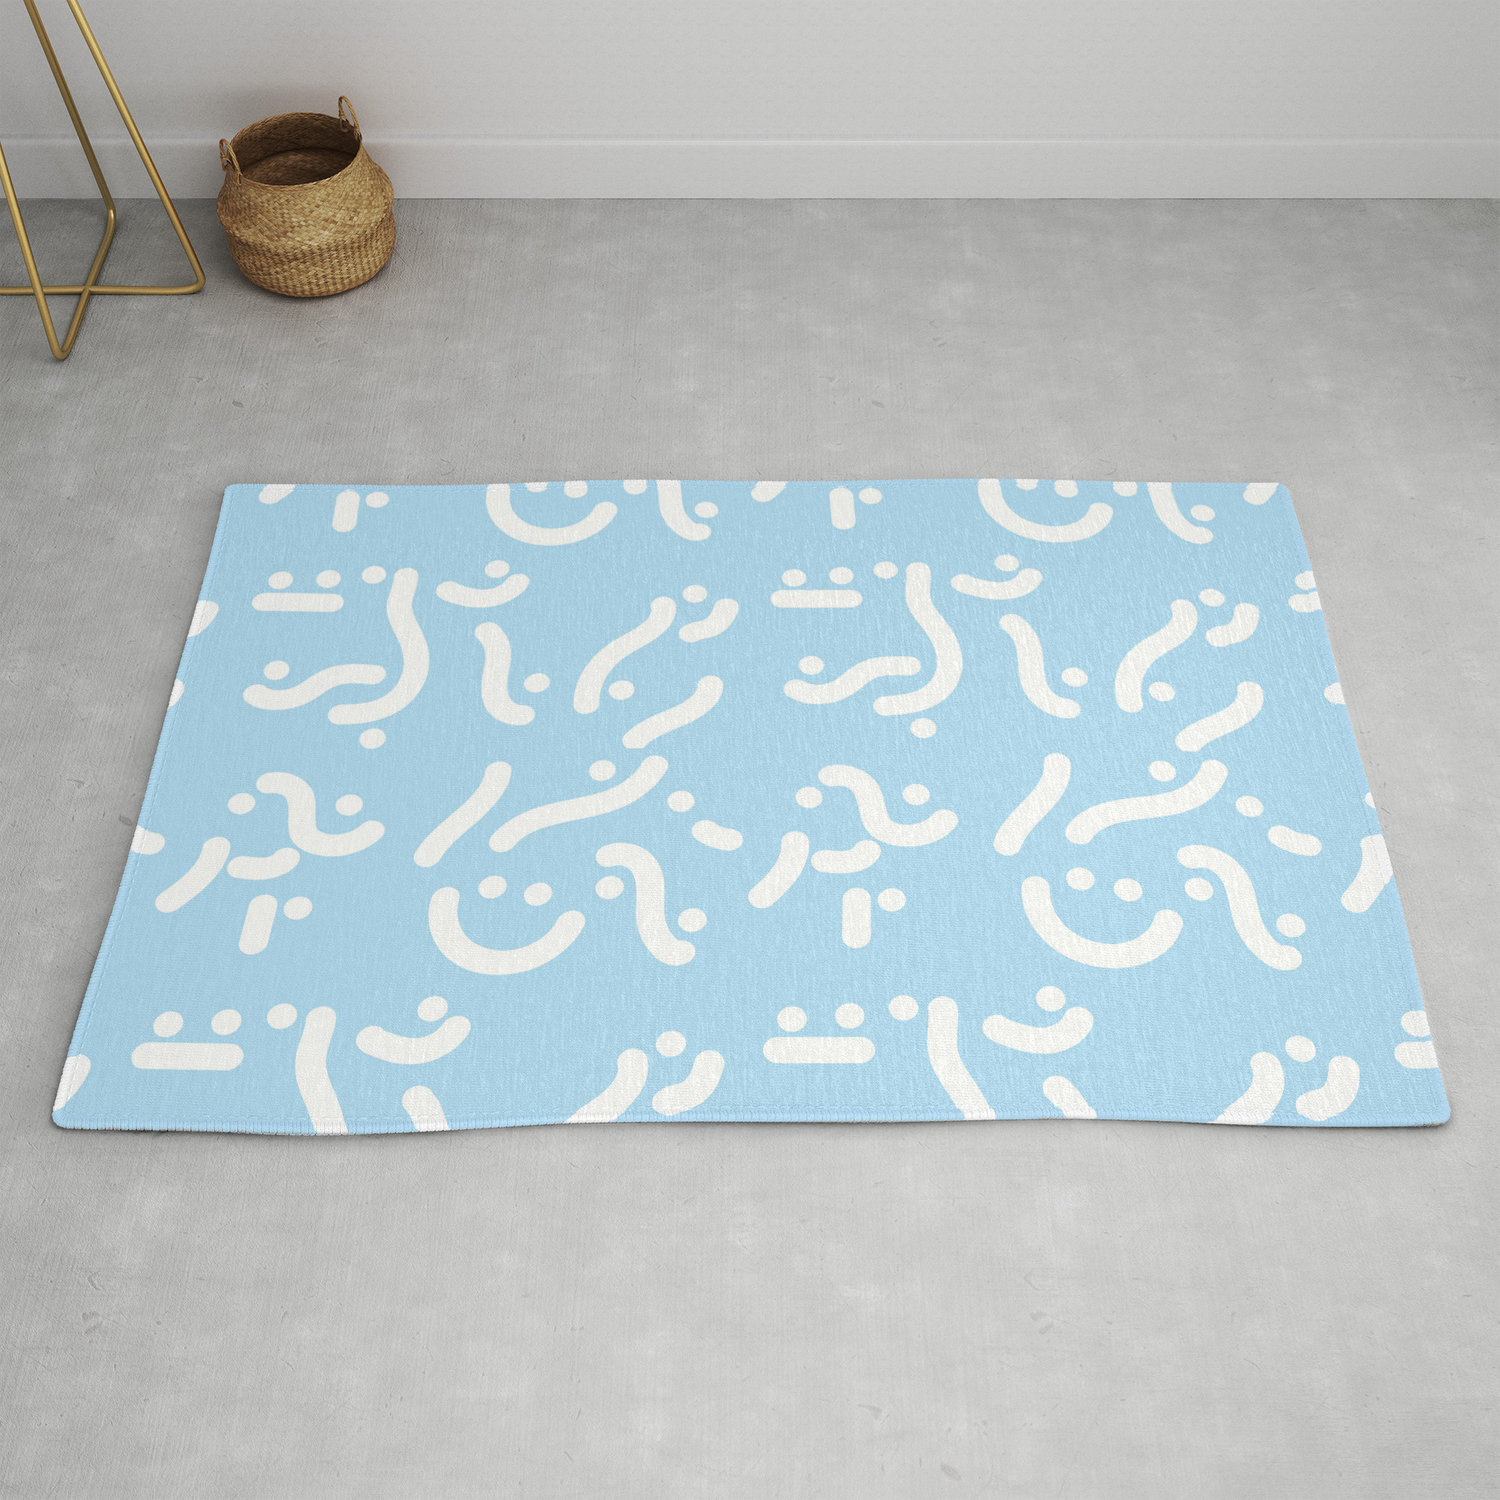 Curvers Lines Runners Rug By Mihaiparaschiv